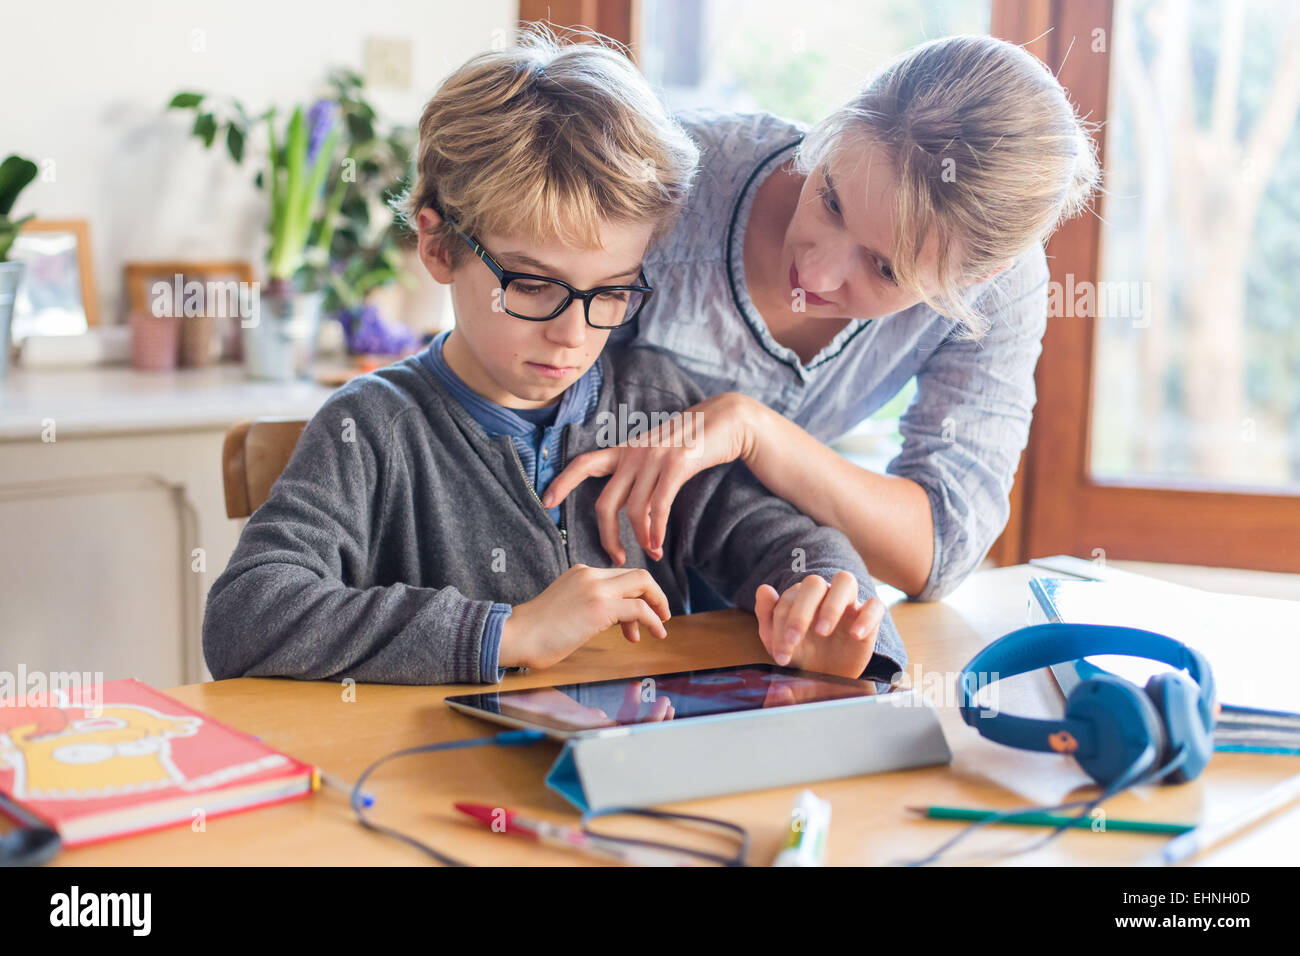 8 year old boy using tablet computer. - Stock Image